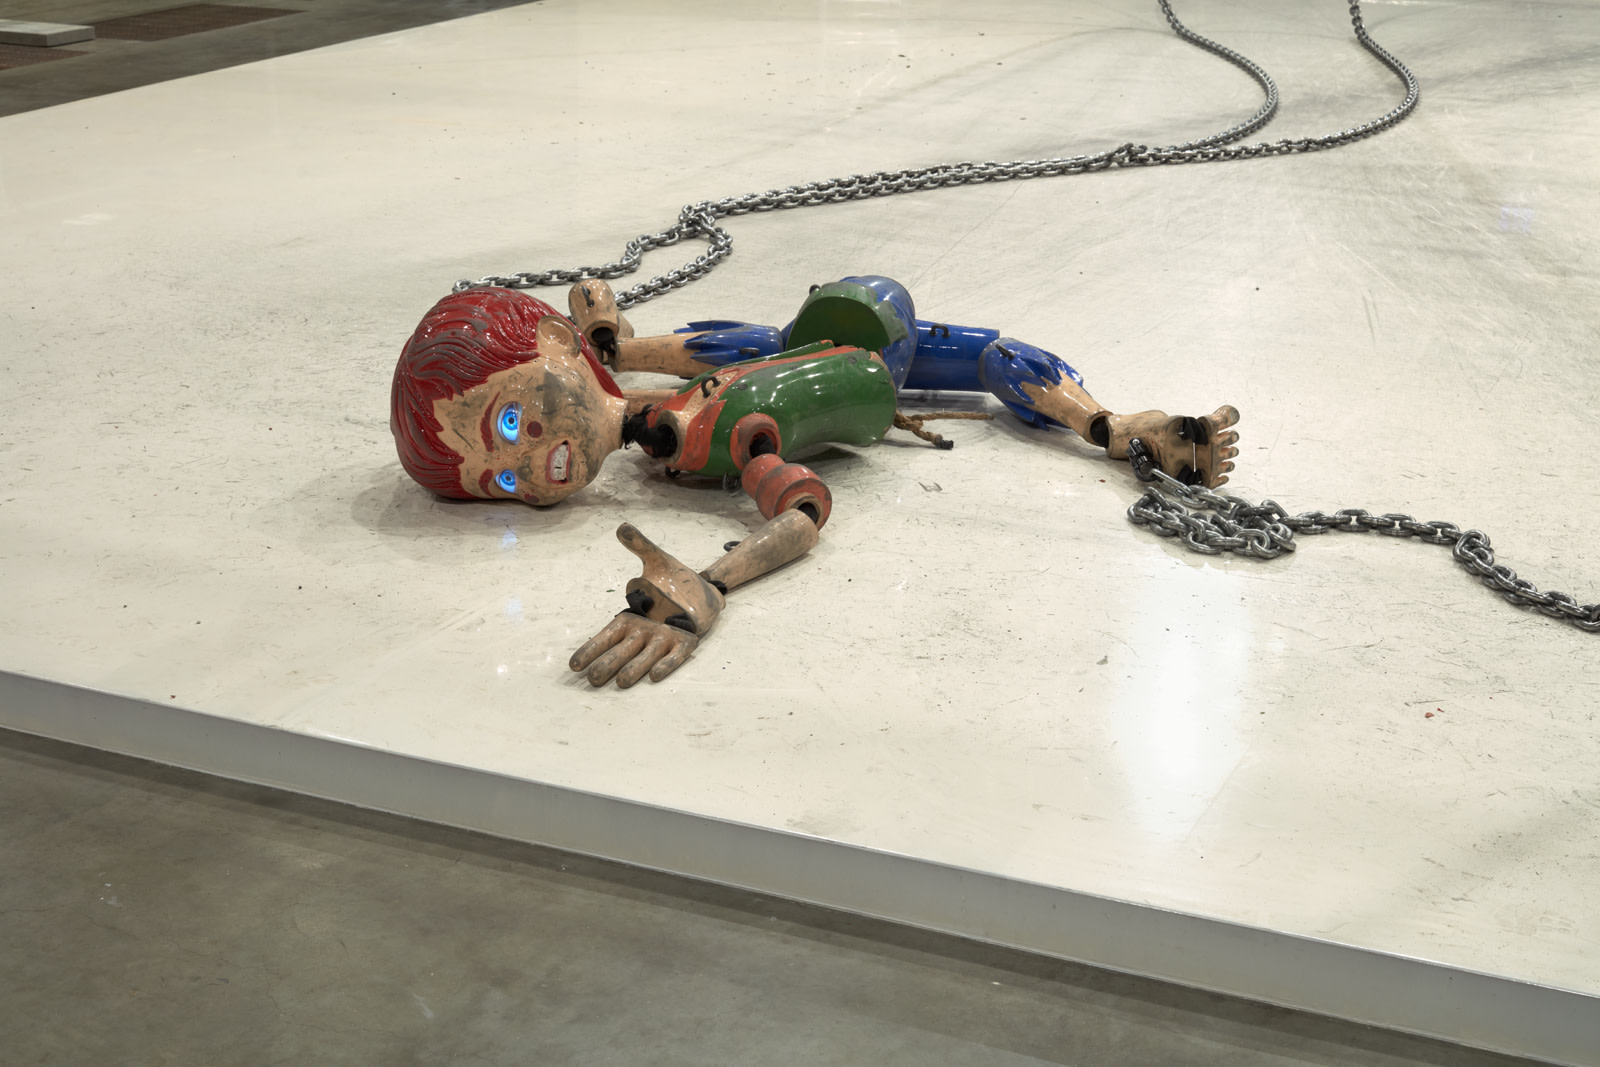 <p>Colored<em> sculpture</em>, 2016, installation view, The Tanks, Tate Modern, 3 May - 31 August 2018</p><p>Mixed media</p><p>Overall dimensions vary with each installation</p><p>Photo: Robert Glowacki</p>